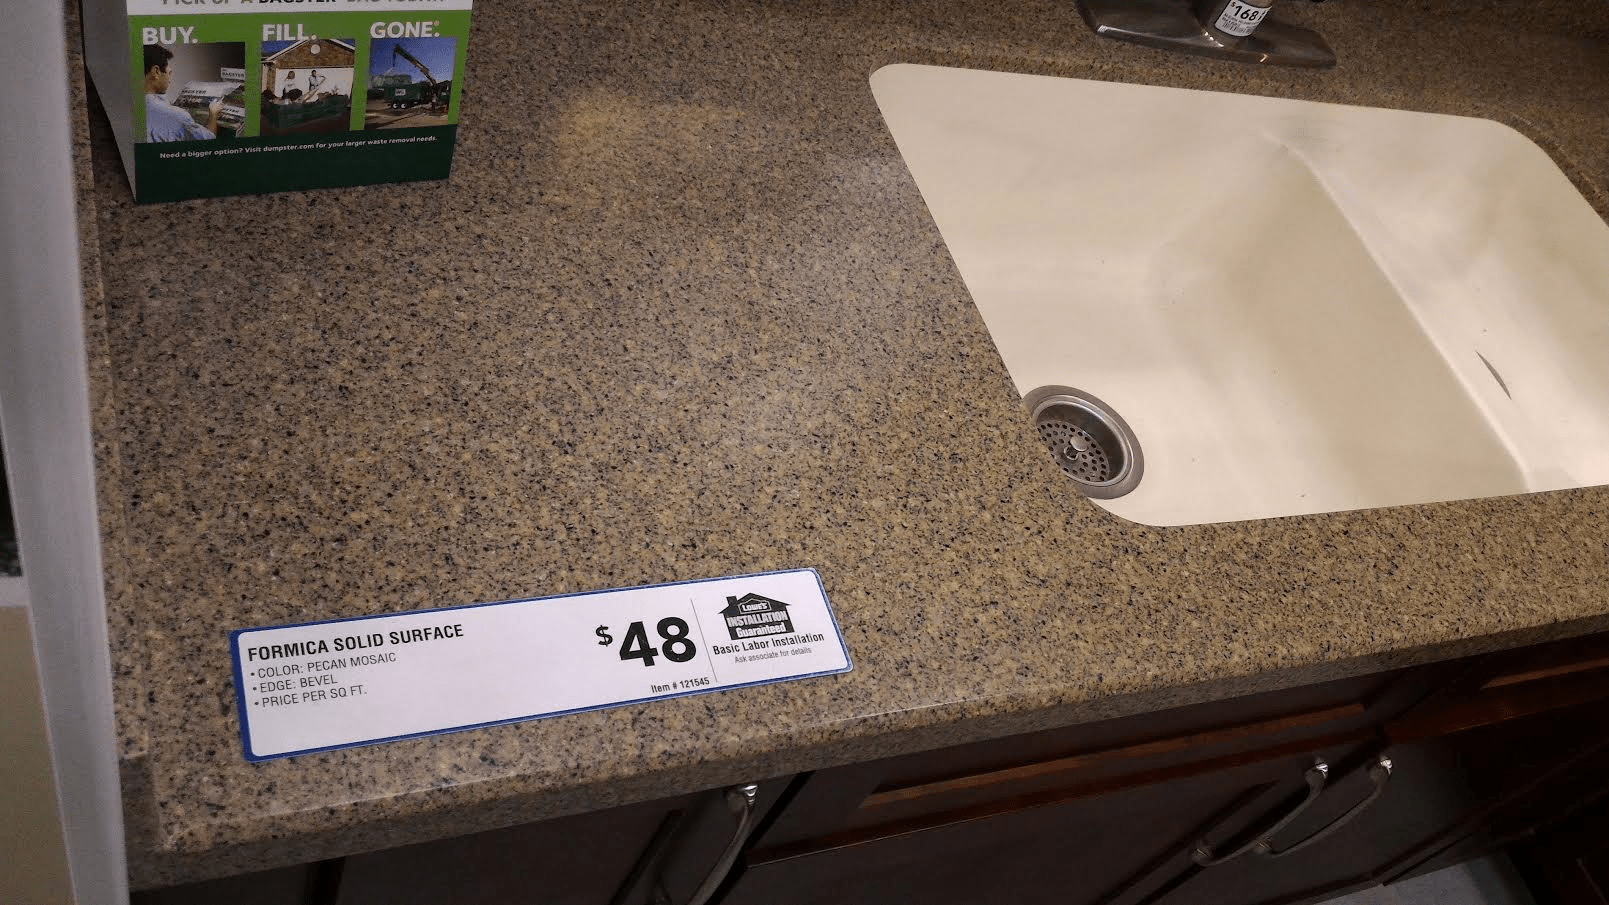 Countertop Comparisons Top 10 Countertops Prices Pros Cons Kitchen Countertops